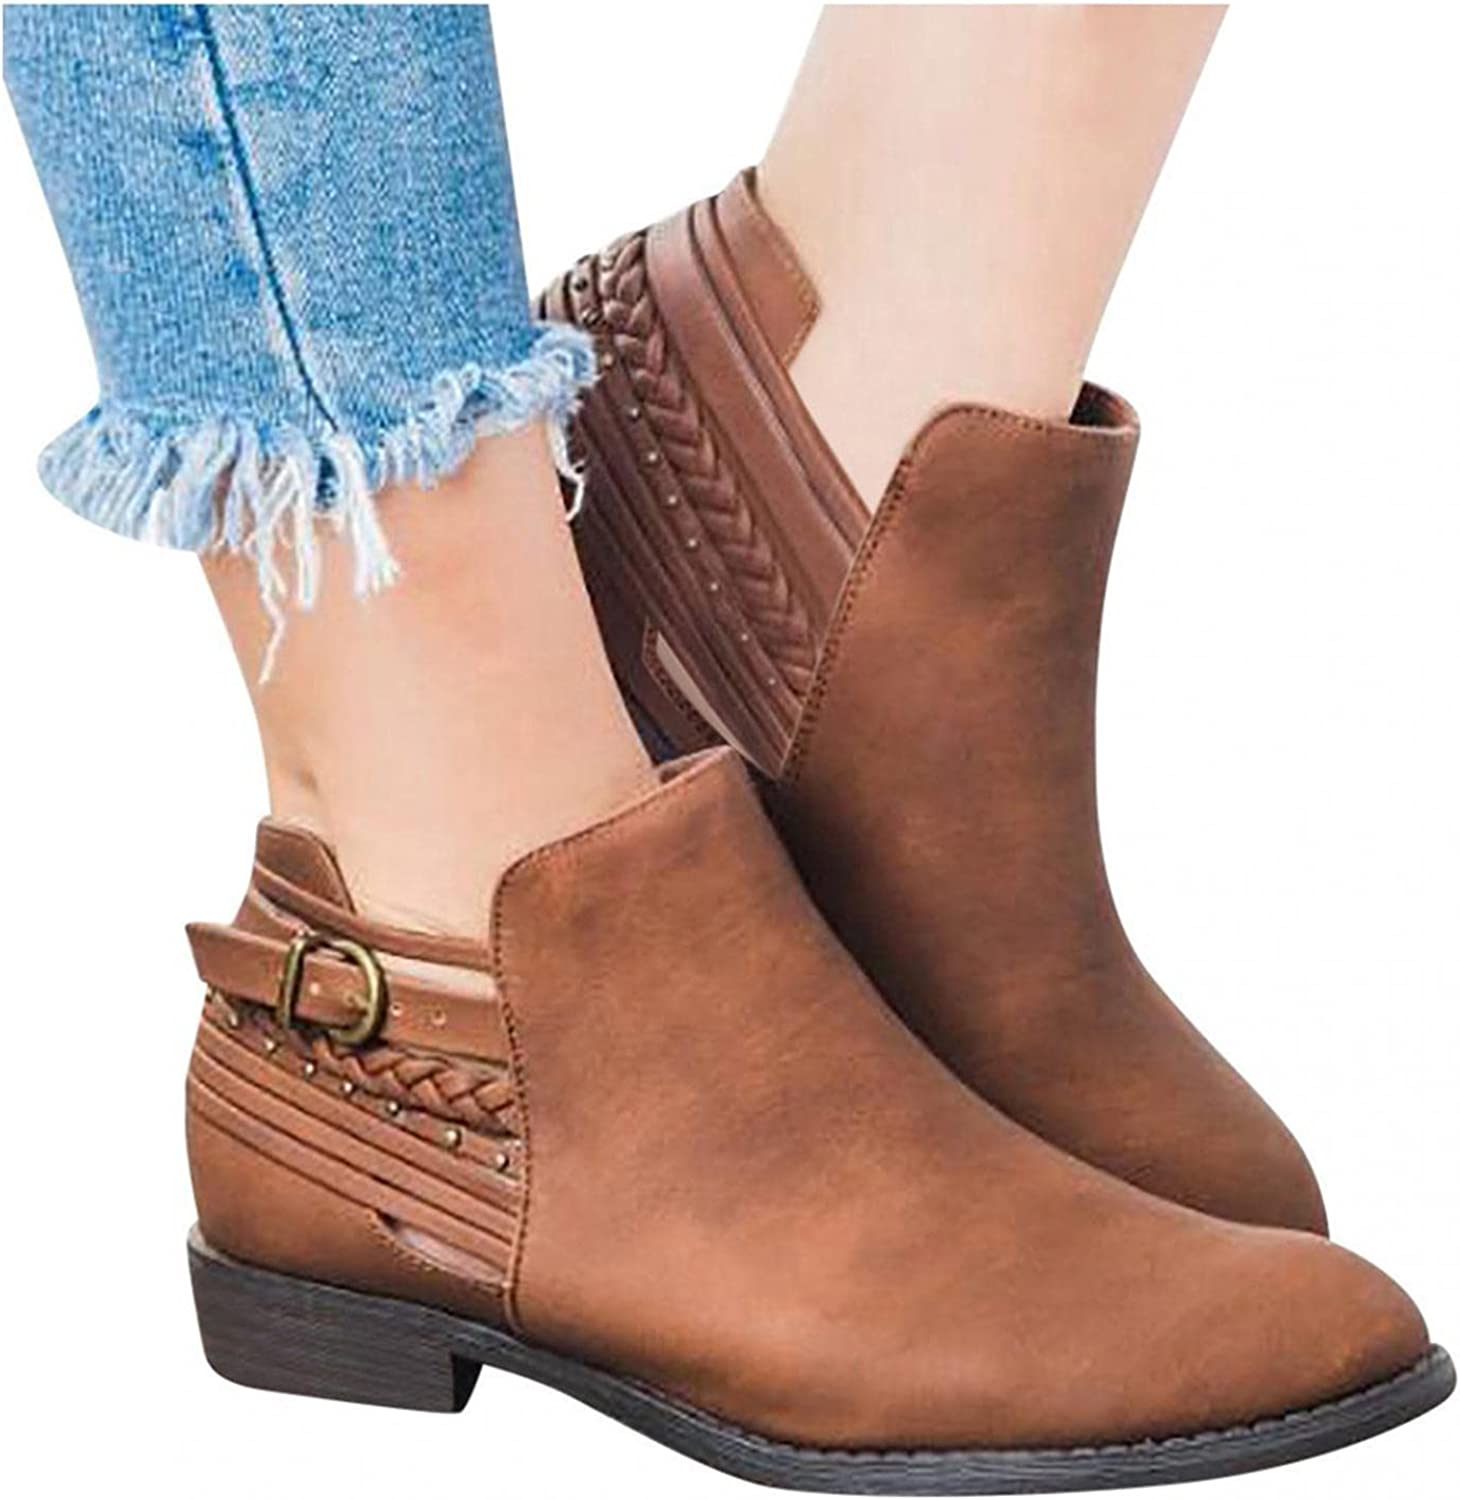 Gibobby Ankle Boots for Women Low Heel Fashion Casual Round Toe Platform Boots Retro Dressy Ankle Strap Zipper Short Cowboy Boots